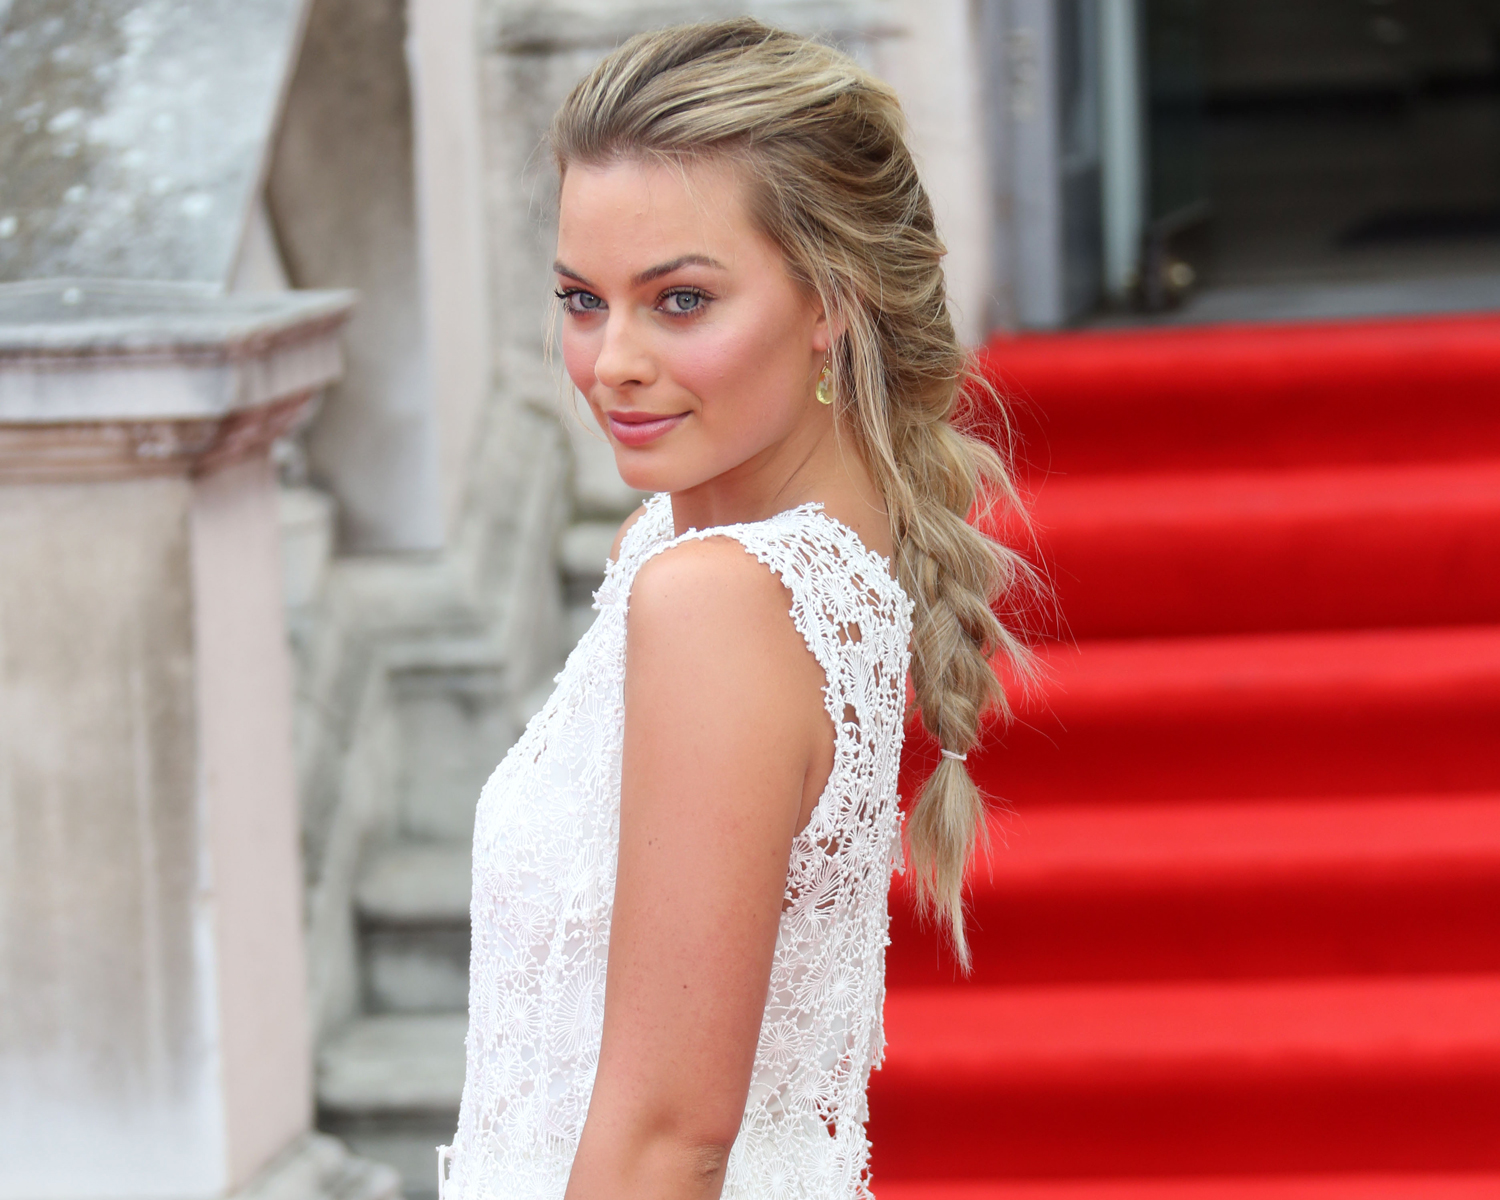 Margot Robbie Red Carpet Images - Margot Robbie Red Carpet Images